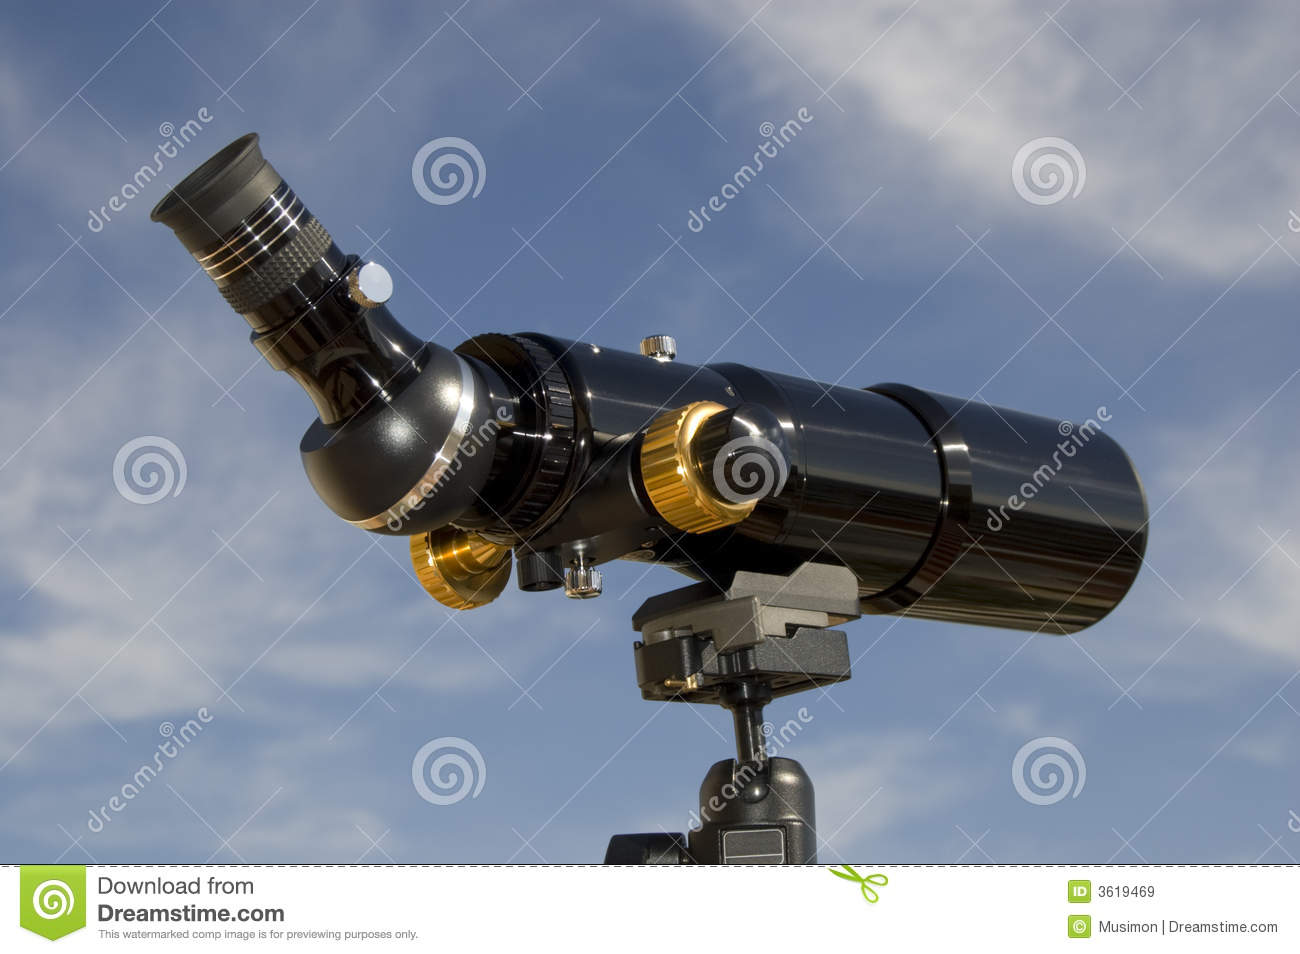 Voyeur spotting scope